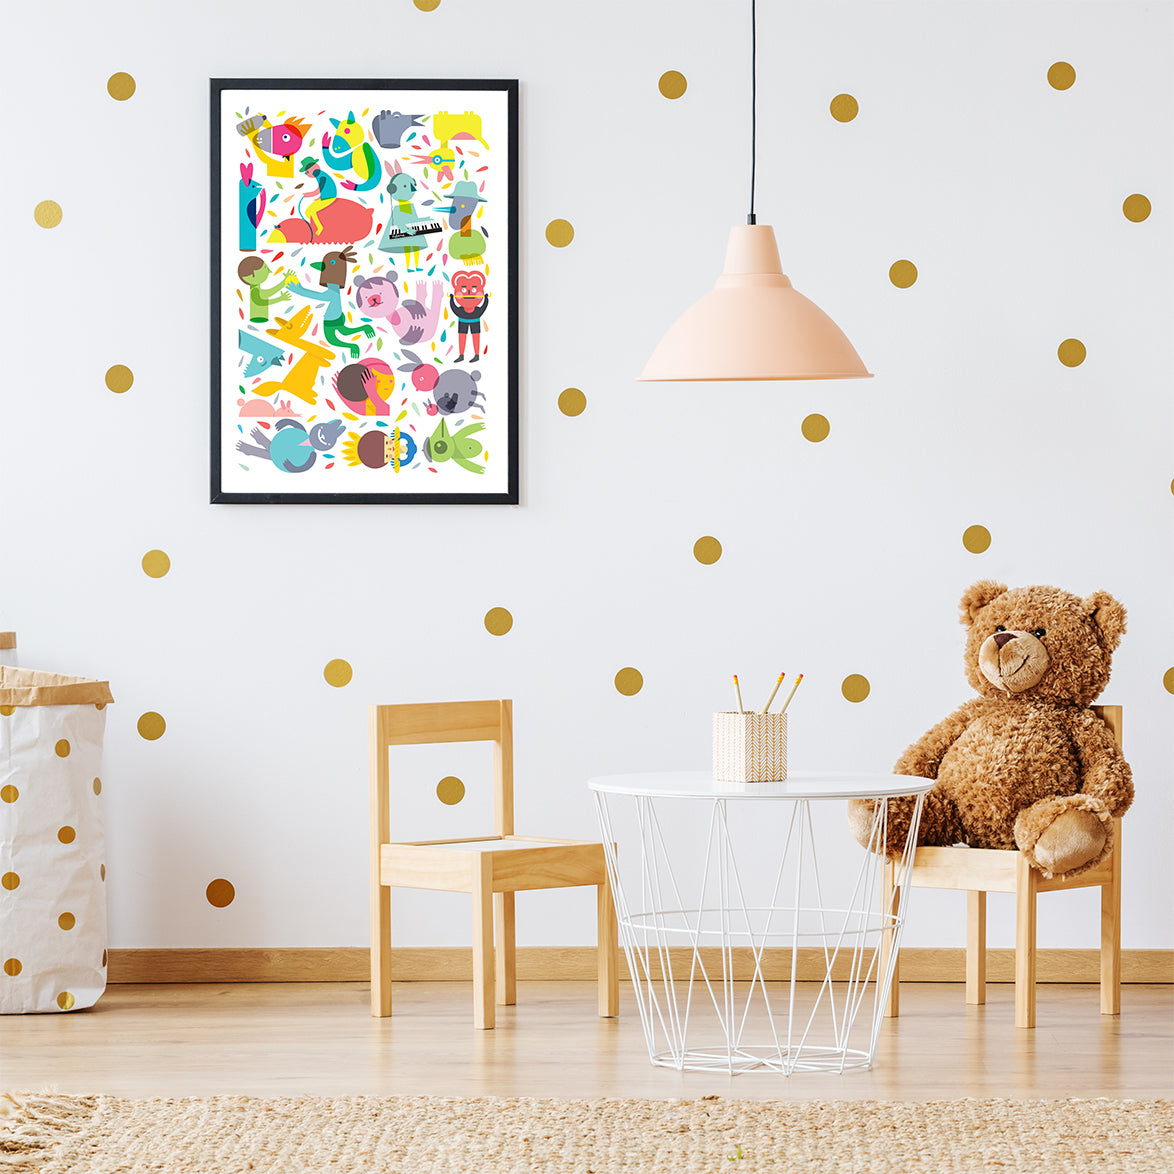 Party graphic print, with cheerful characters and confetti, on white background, in kids room